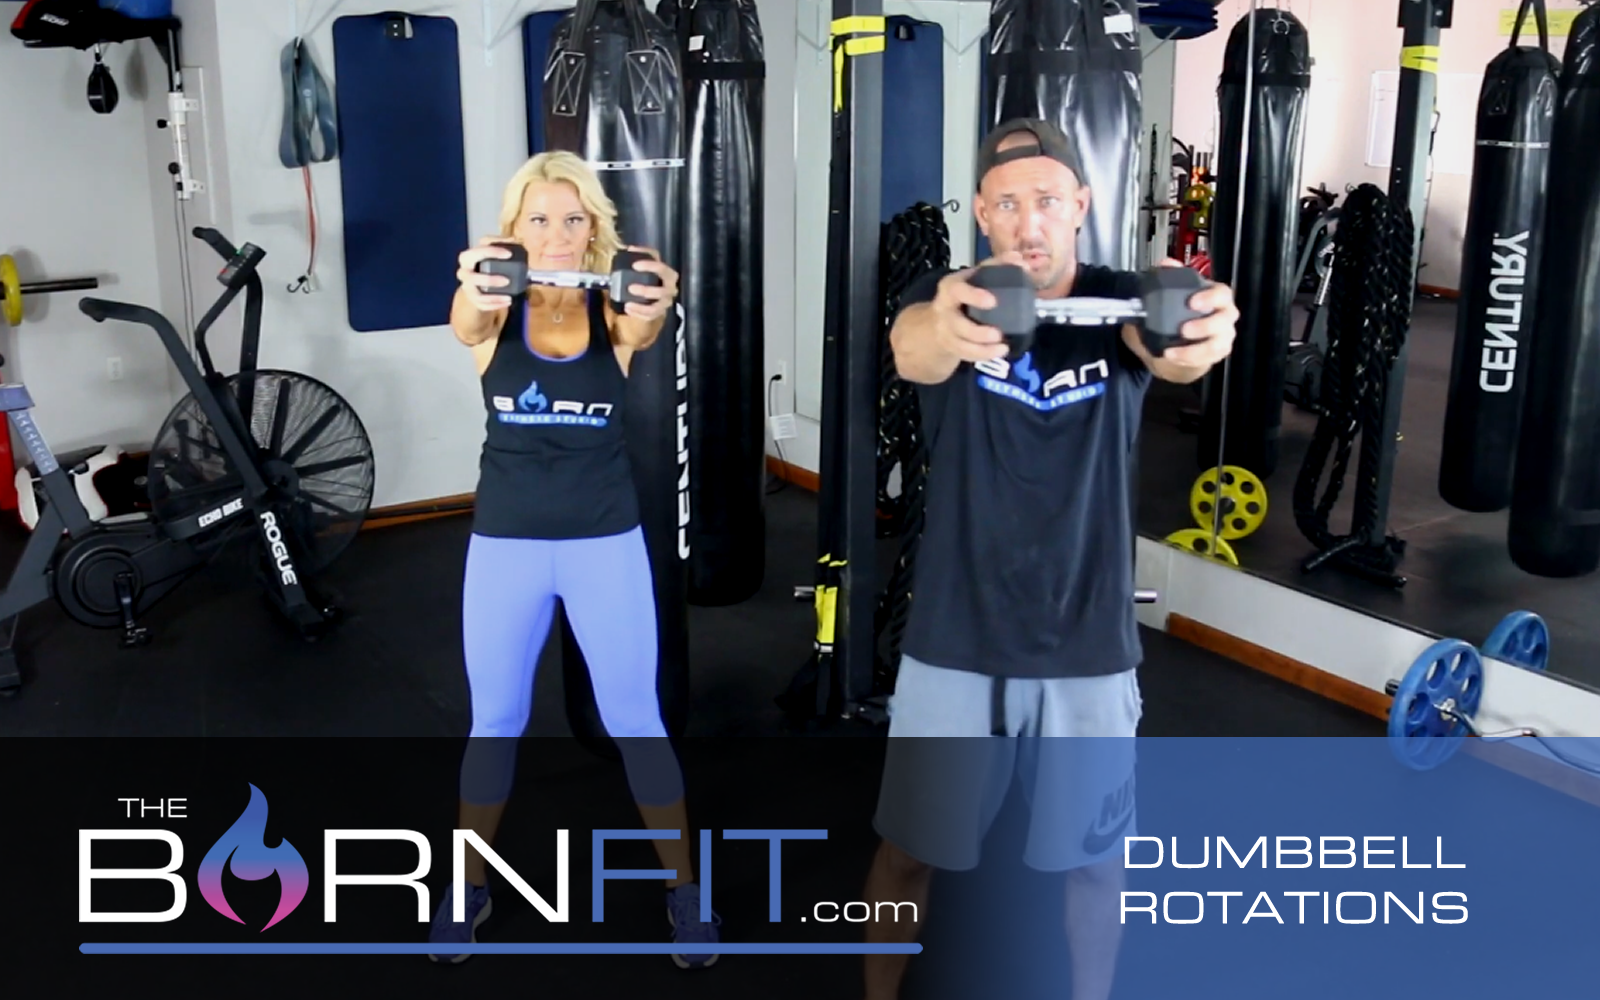 Dumbbell Rotations workouts